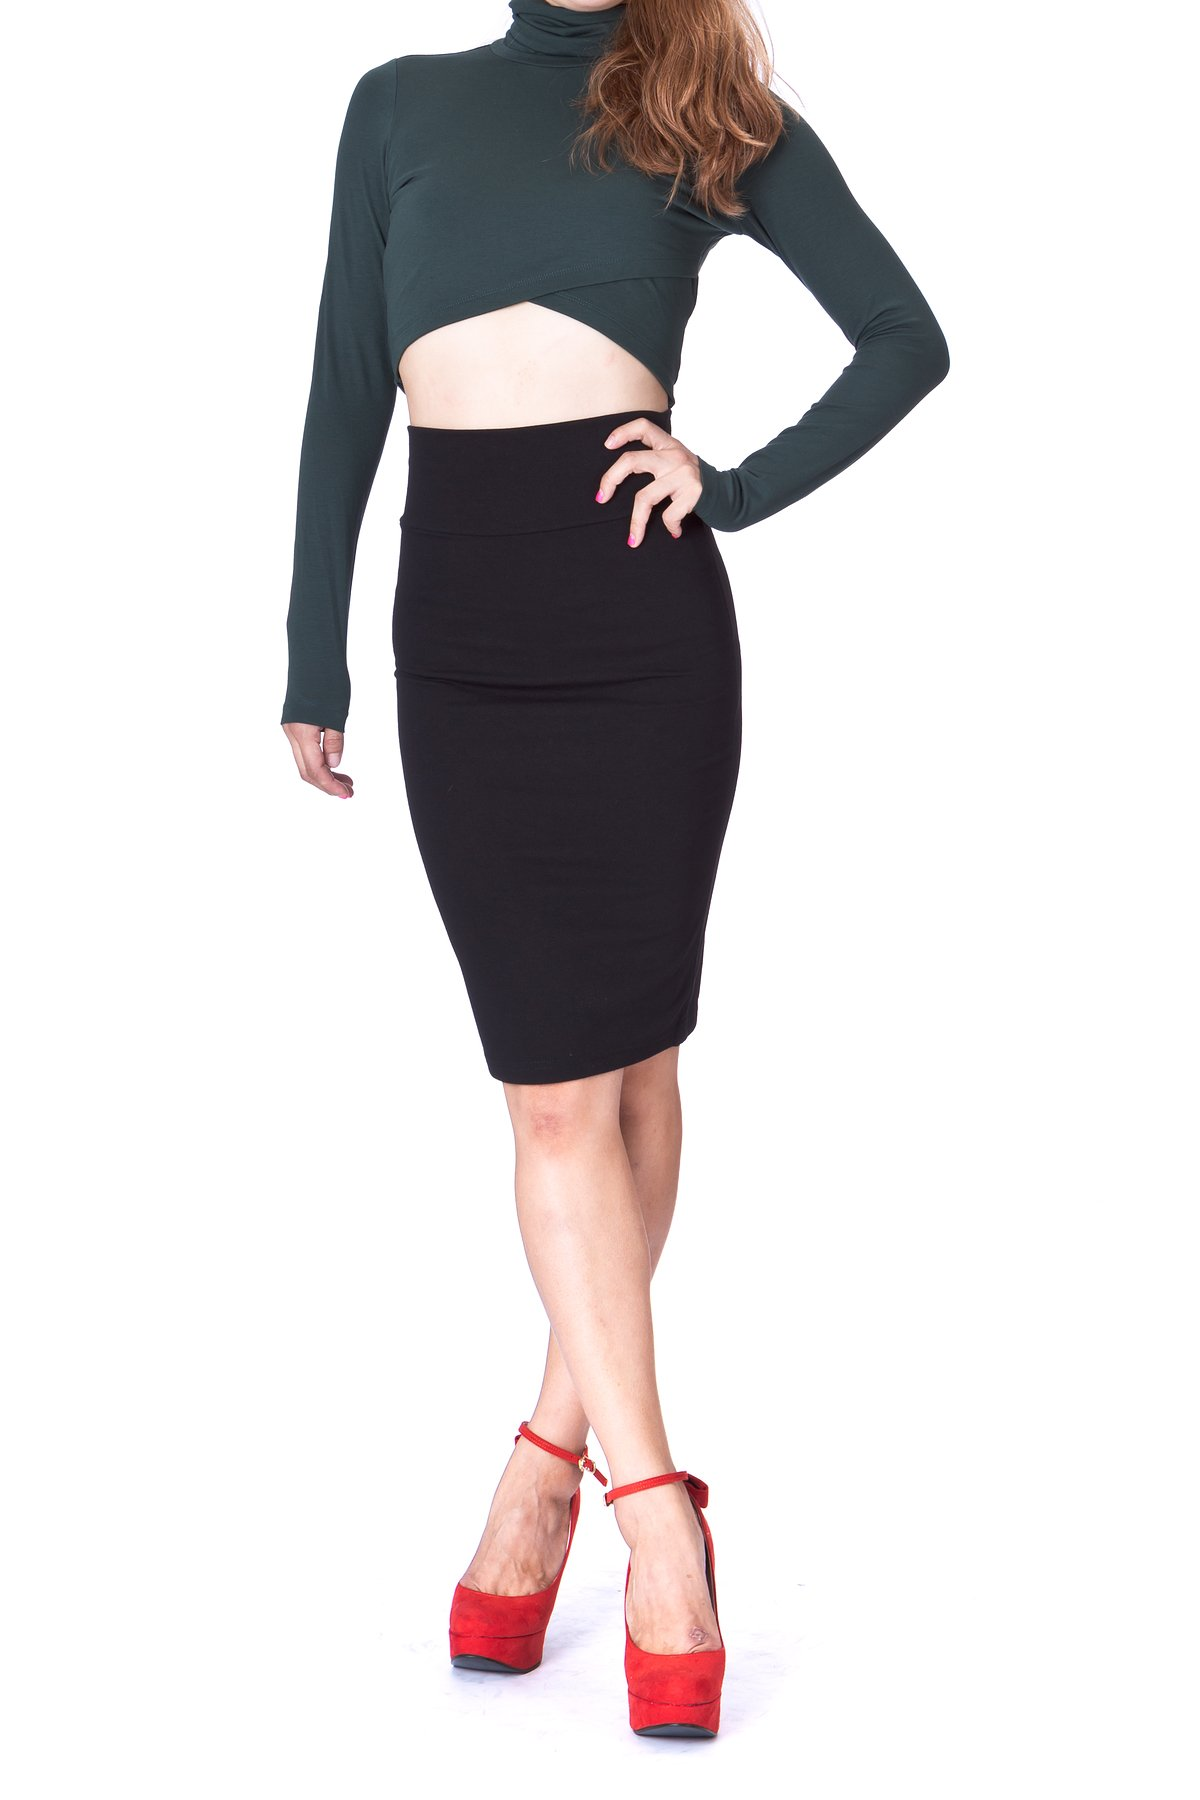 Every Occasion Stretch Pull on Wide High Waist Bodycon Pencil Knee Length Midi Skirt Black 1